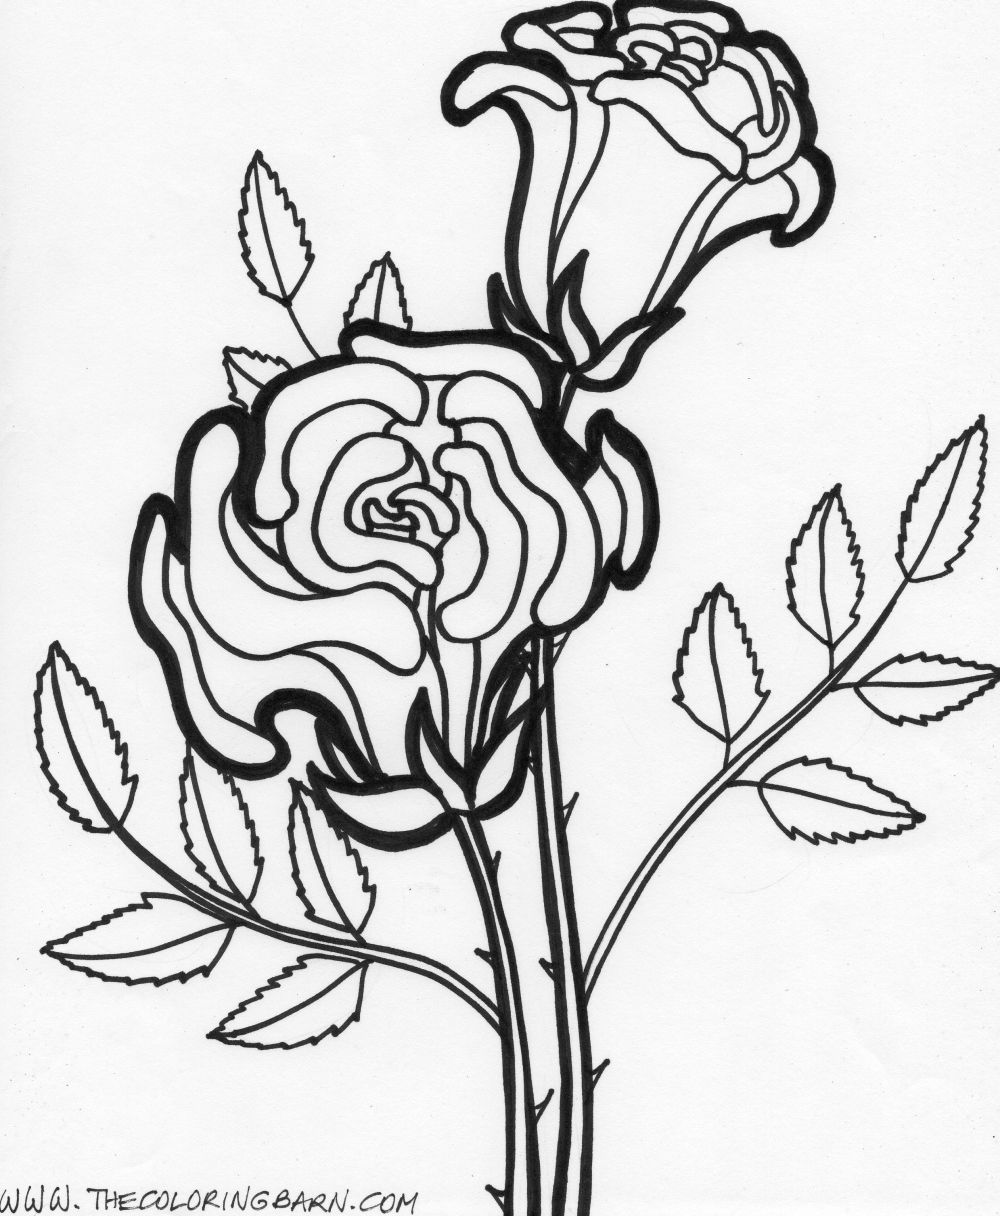 coloring pages flowers printable free printable flower coloring pages for kids best printable flowers coloring pages